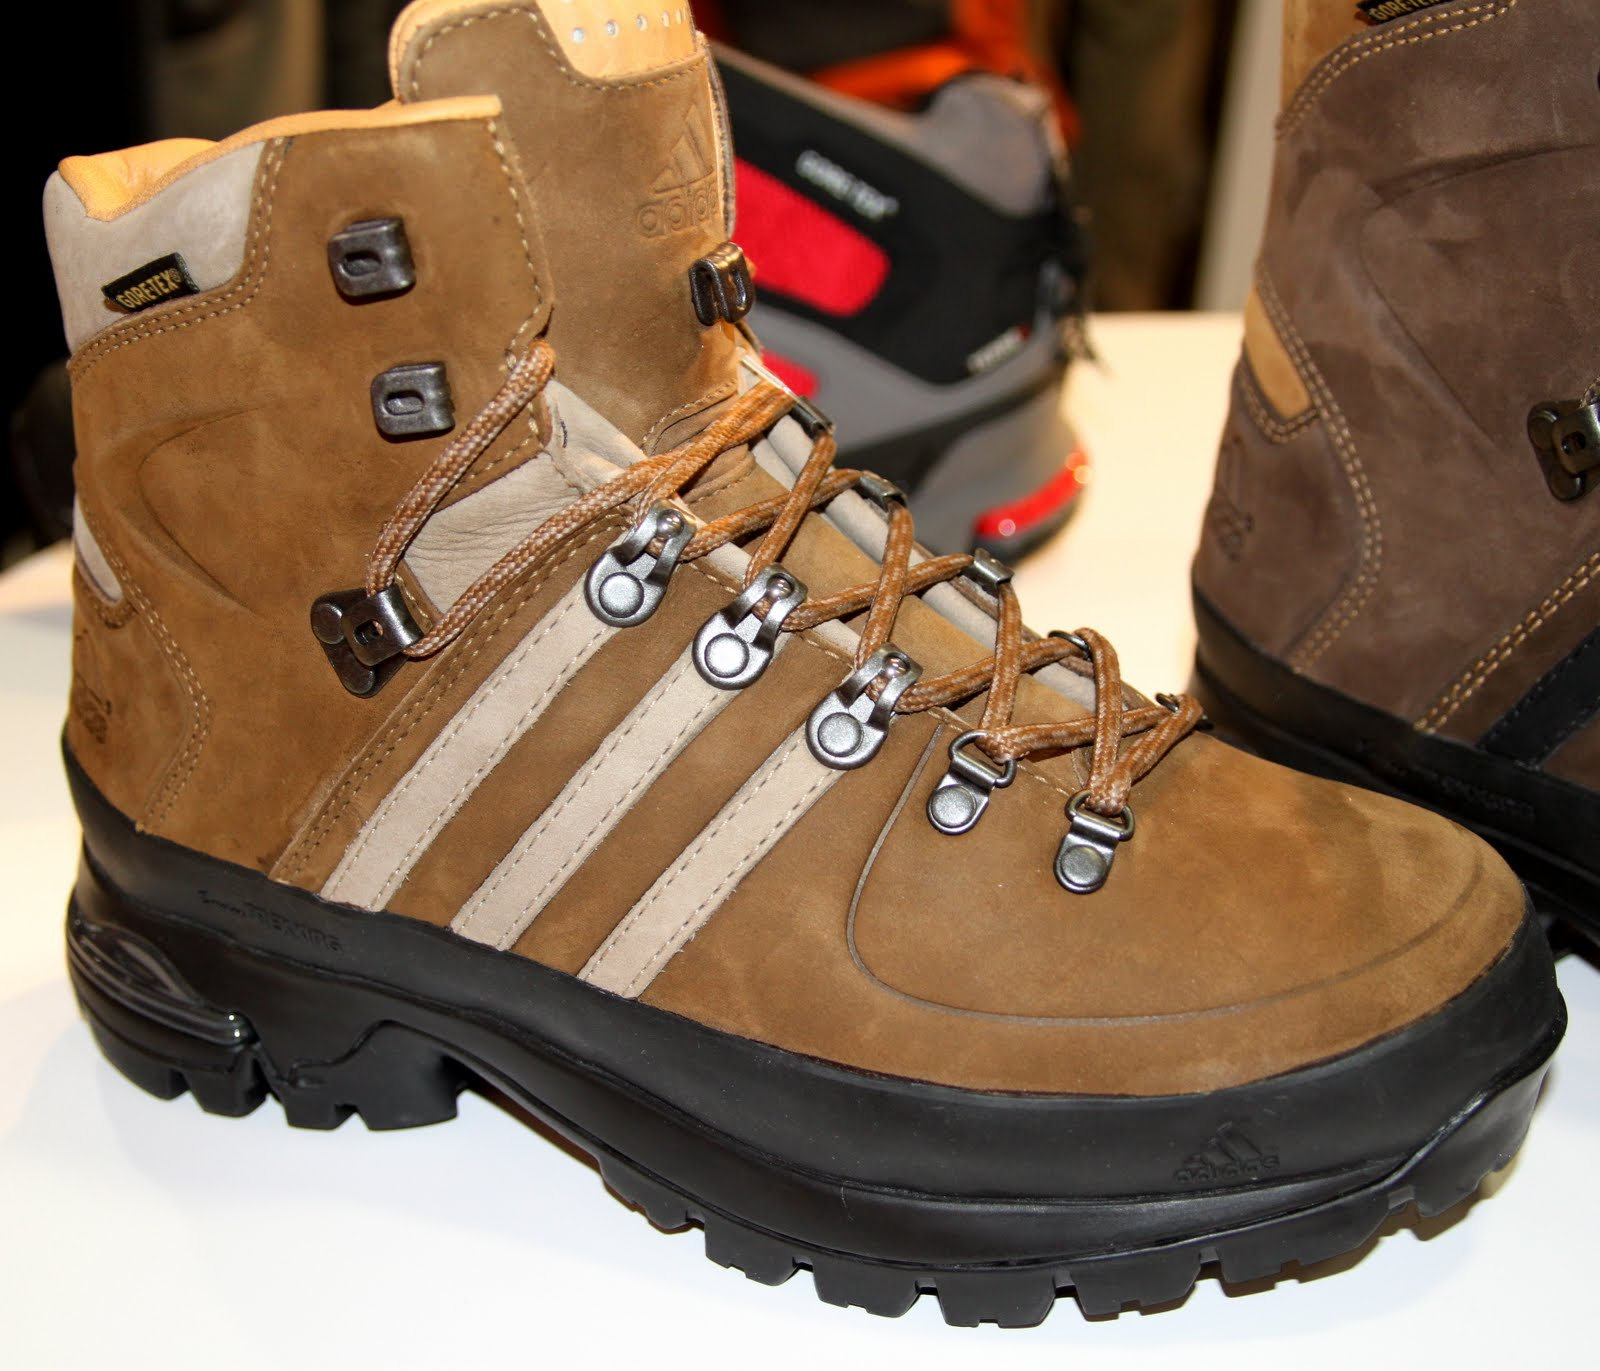 ADIDAS NEW OUTDOOR APPAREL FOOTWEAR FALL 2011 f9a5da38b3